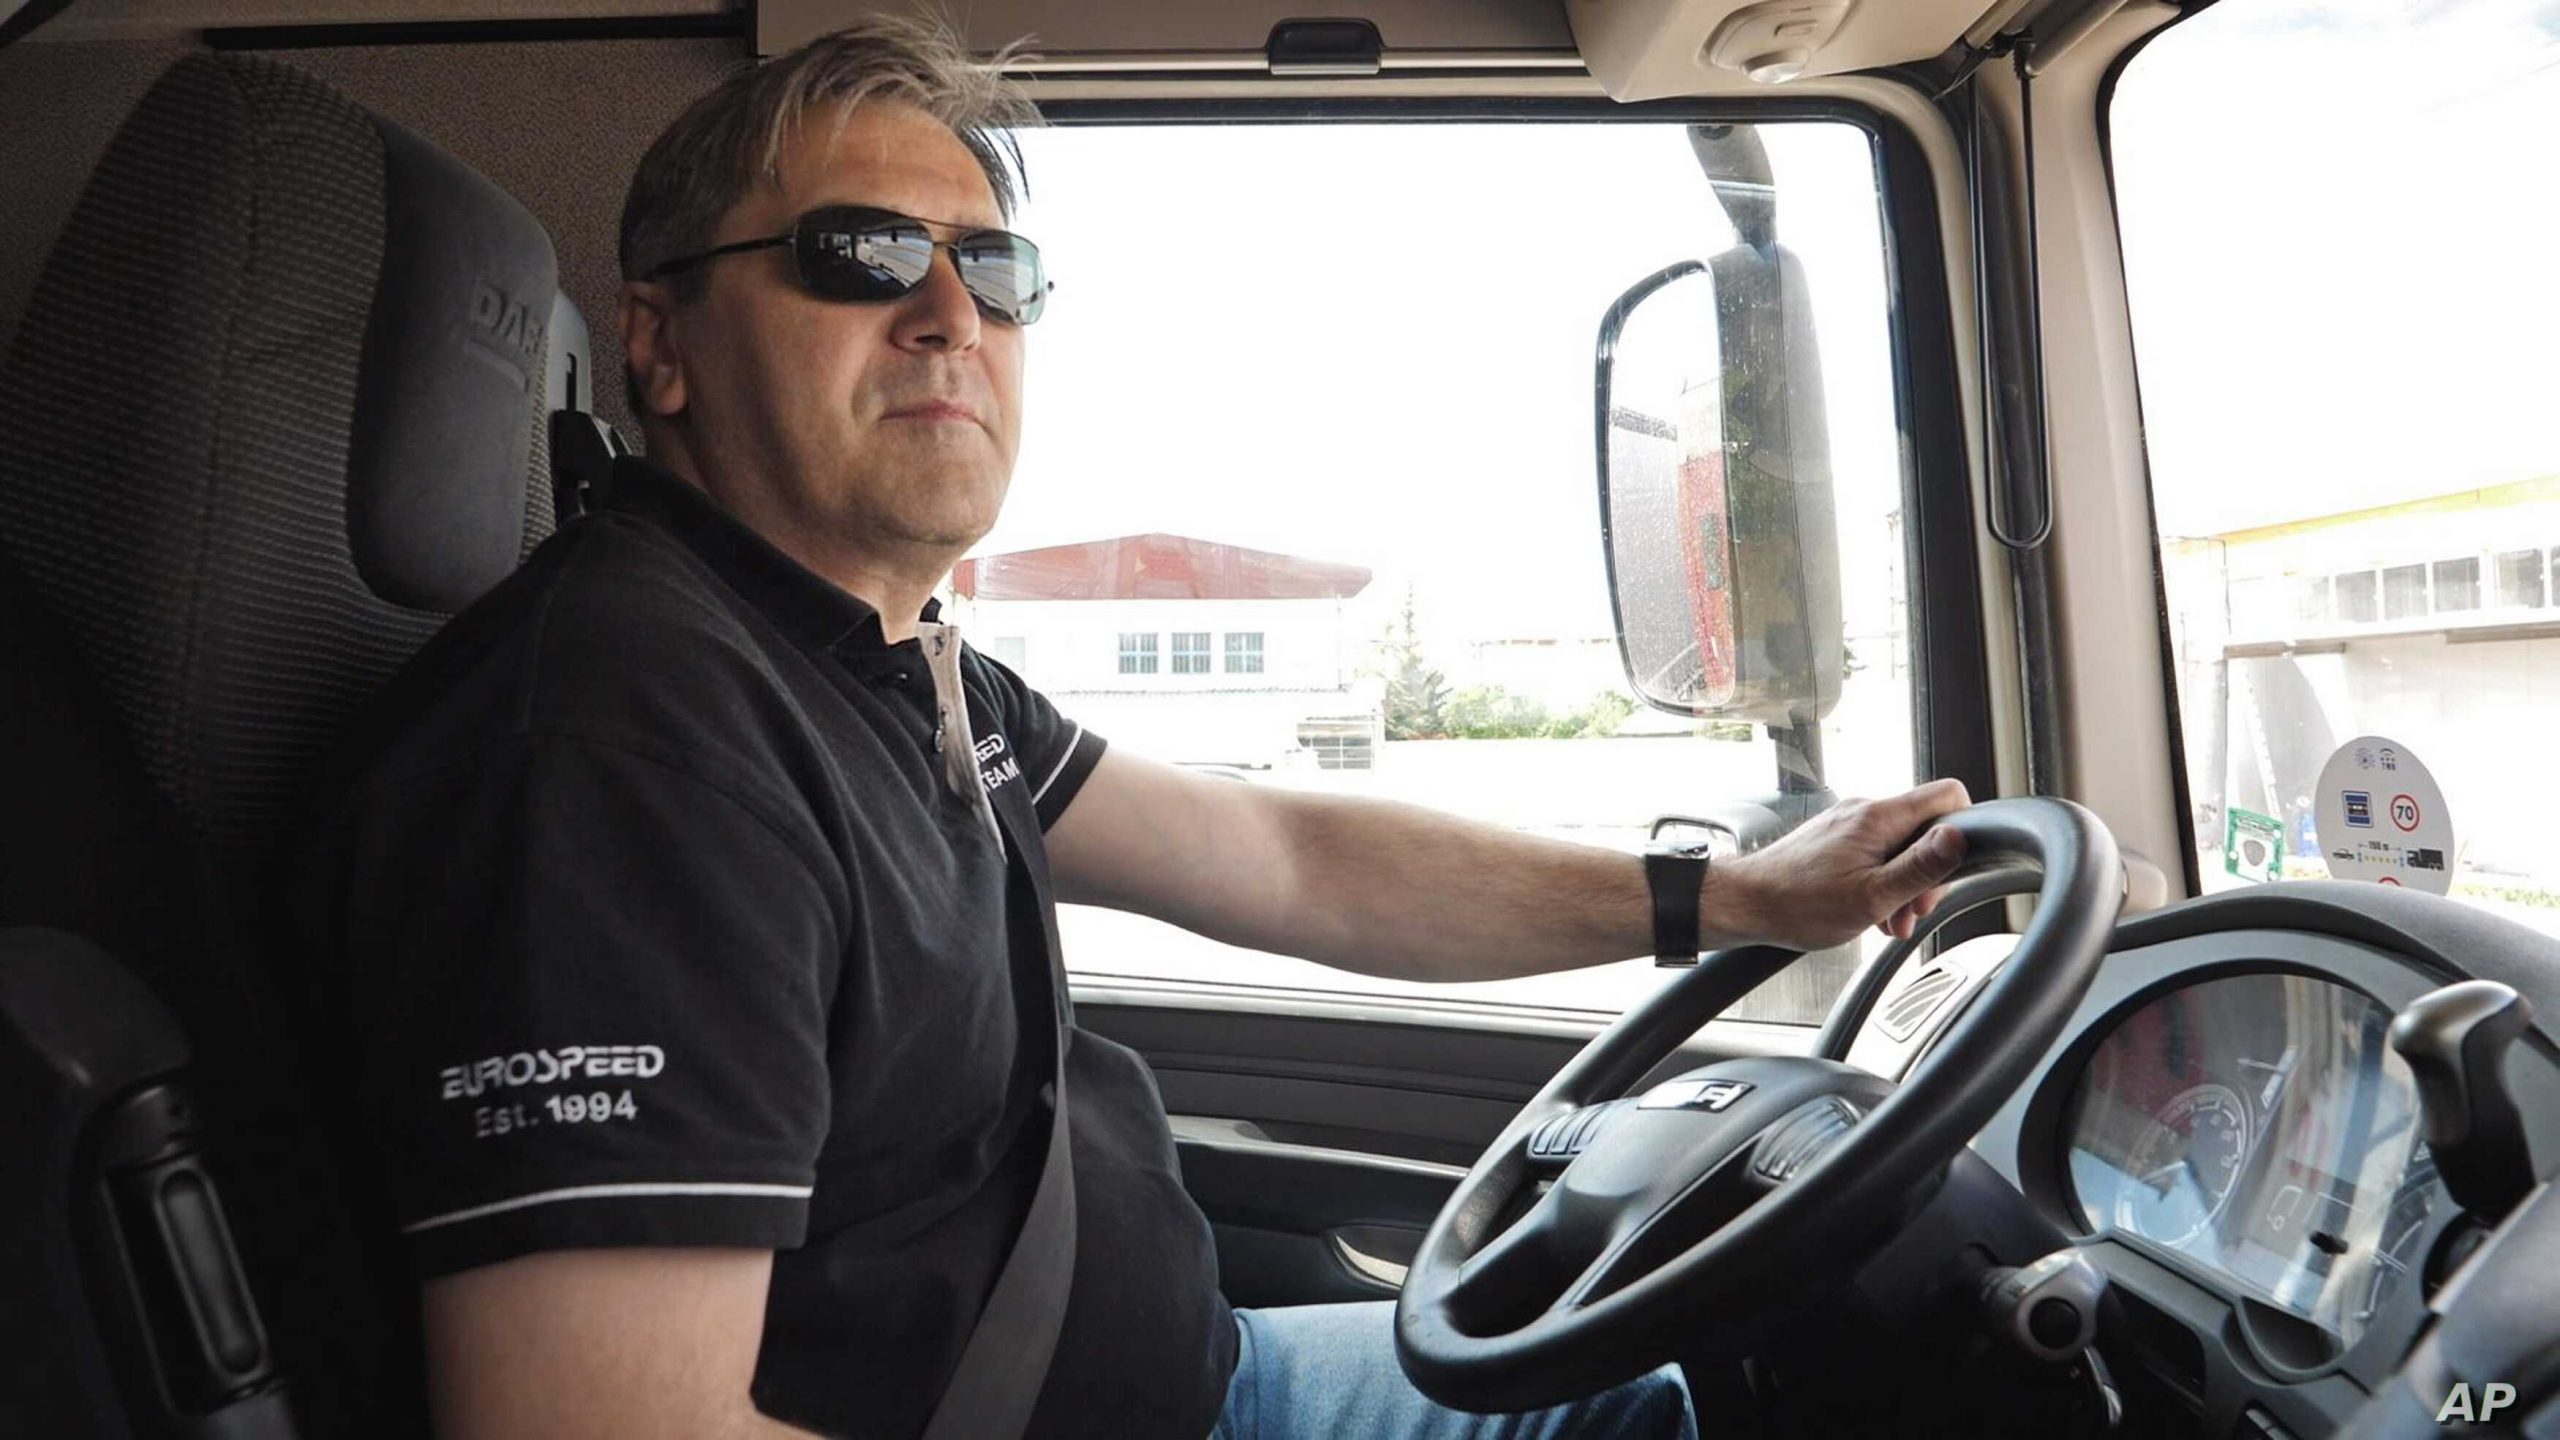 Become a Transport Driver